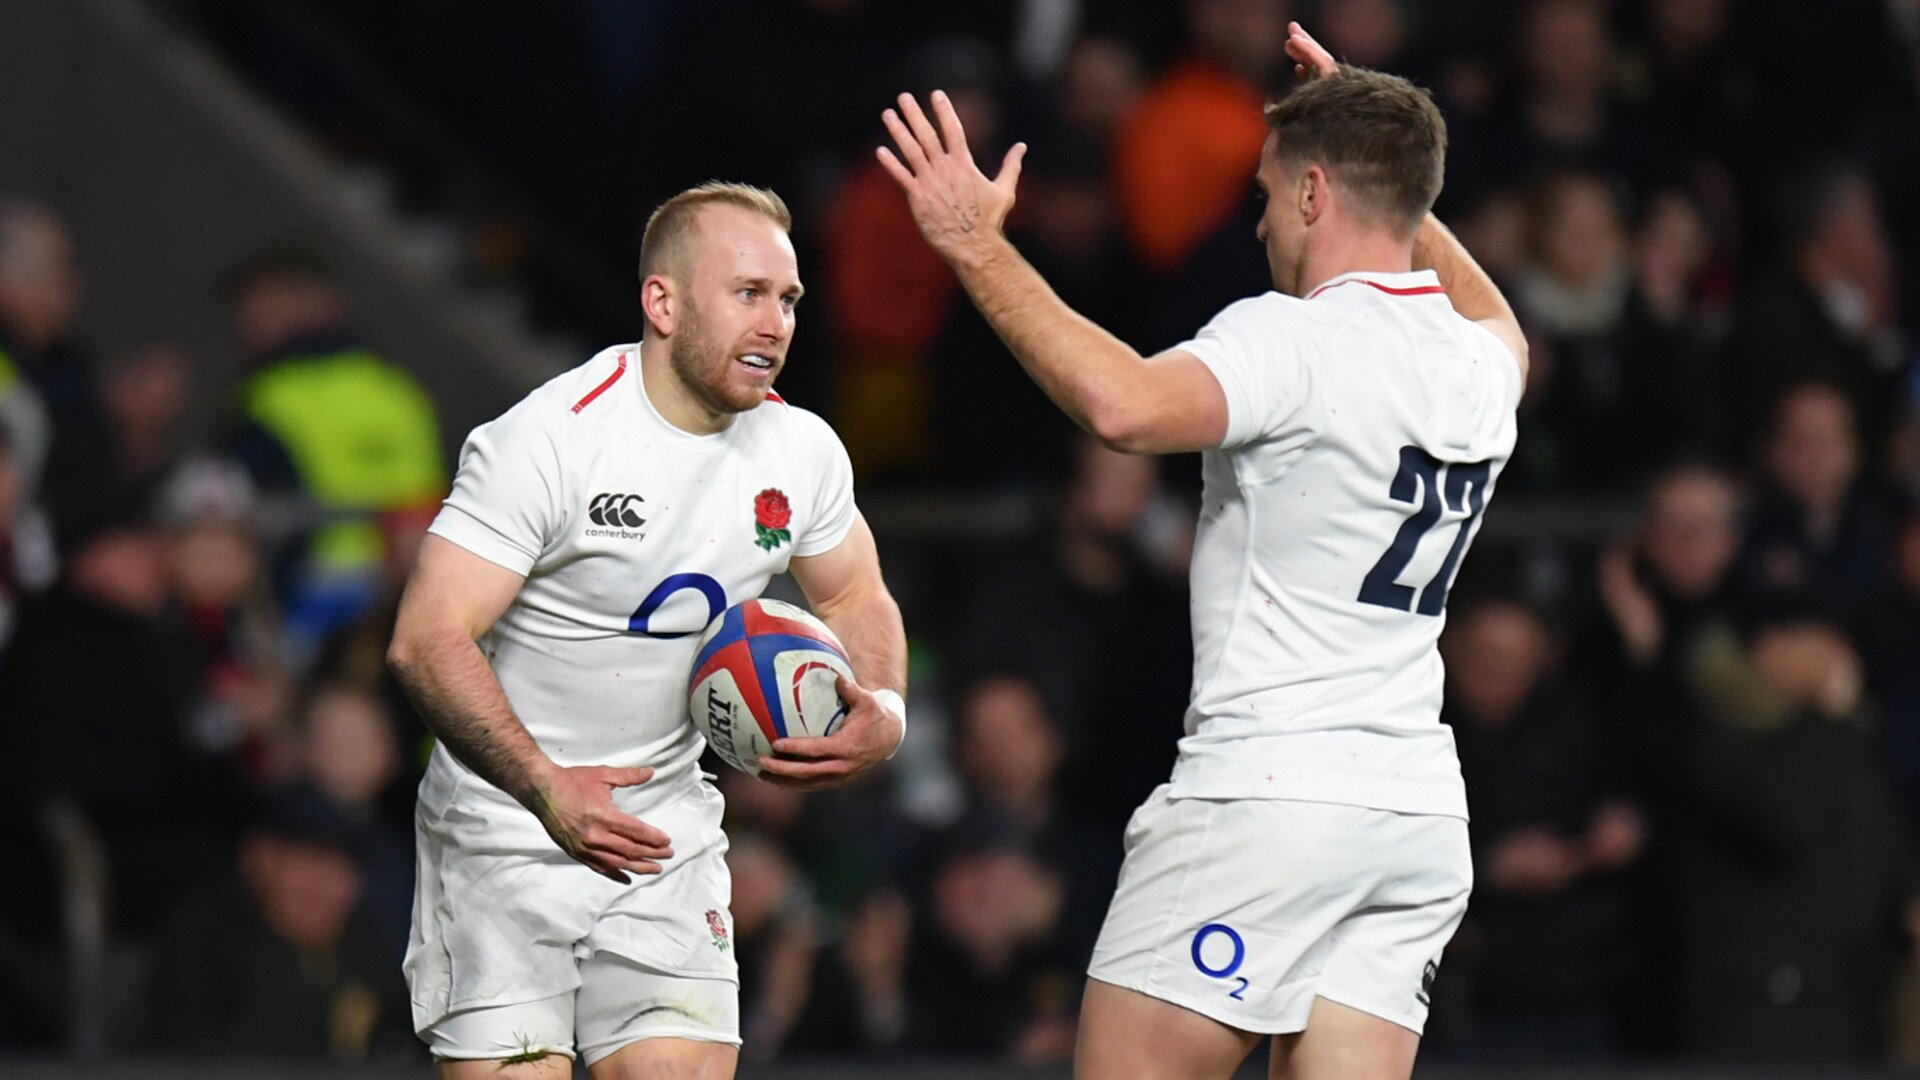 'Is there frustration? Absolutely' - England scrumhalf Robson won fight with DVT, now he must win over Eddie Jones